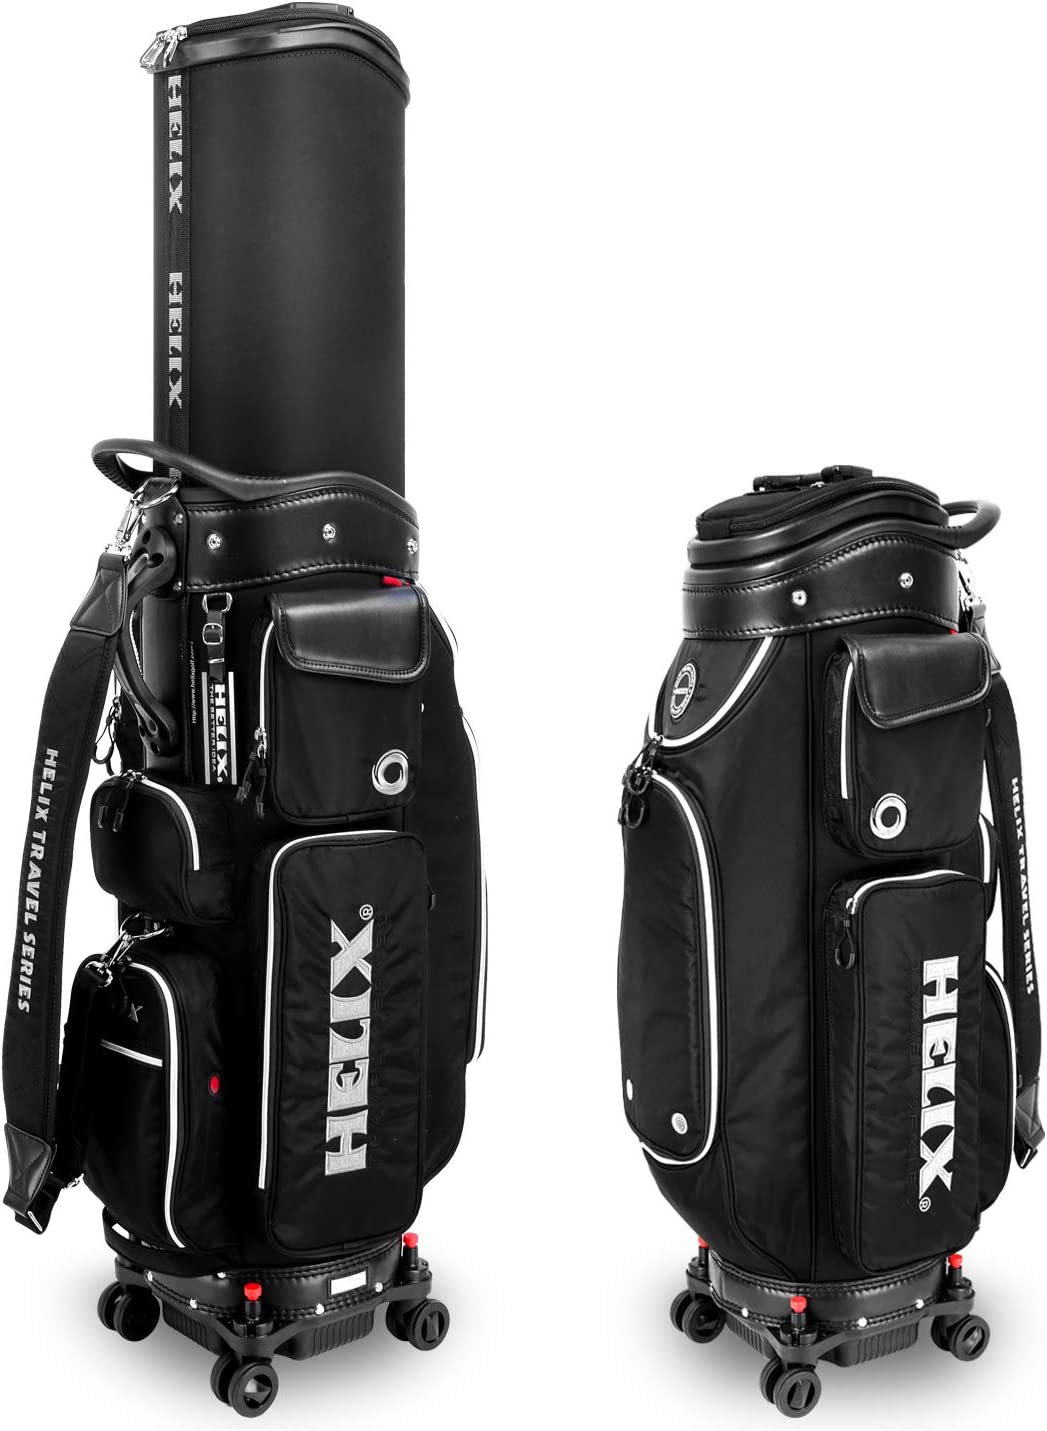 Helix-Golf Golf Stand Bag, Easy to Carry, Retractable Sunday Golf Bag with Locking Wheels Chassis and Latest Integrated Handgrip.